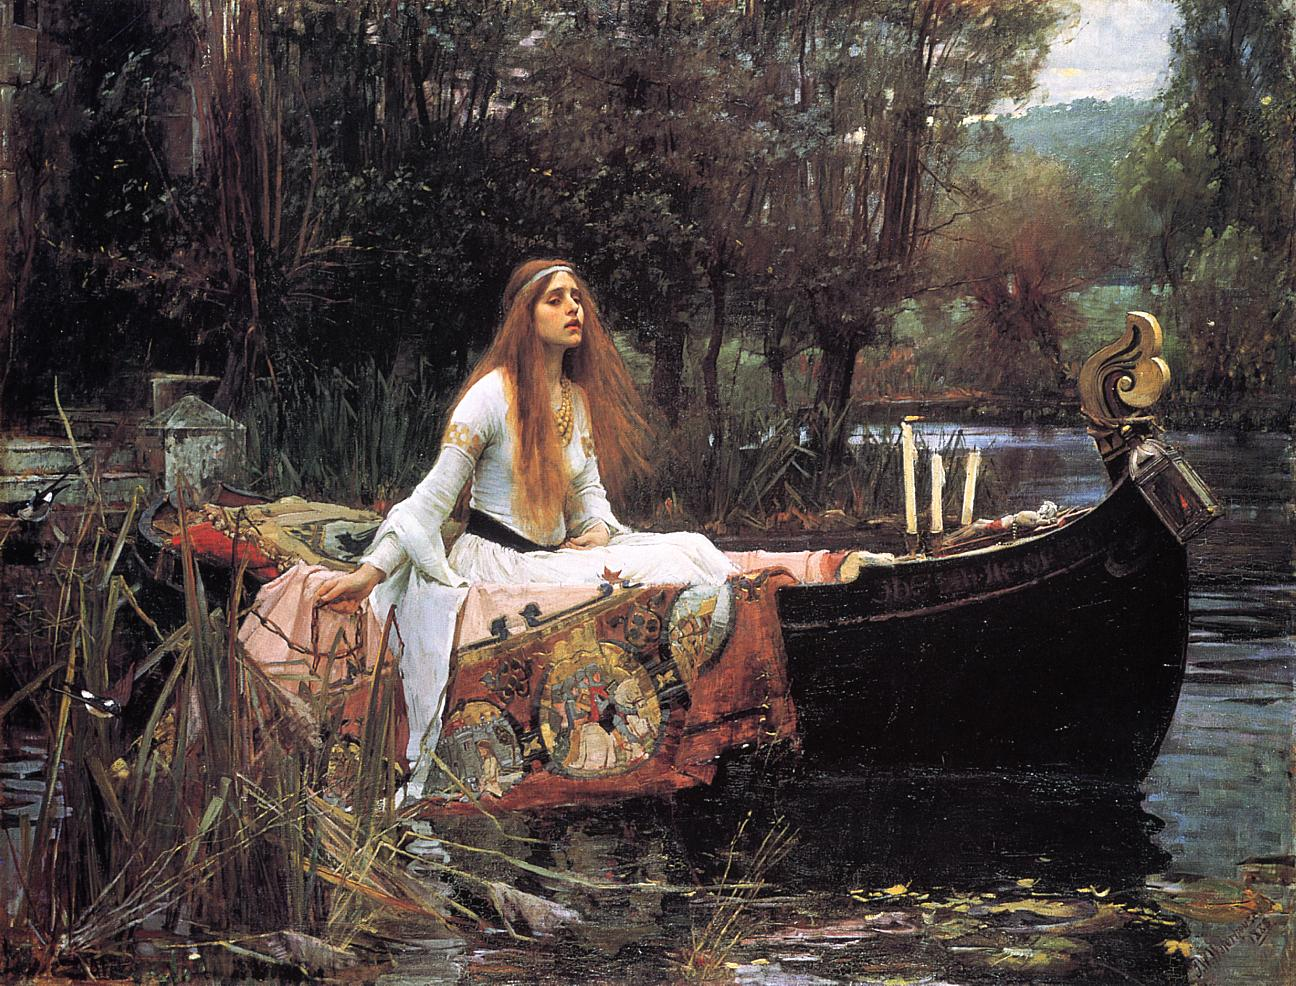 http://allart.biz/up/photos/album/W-X-Y-Z/John%20William%20Waterhouse/john_william_waterhouse_7_the_lady_of_shalott.jpg